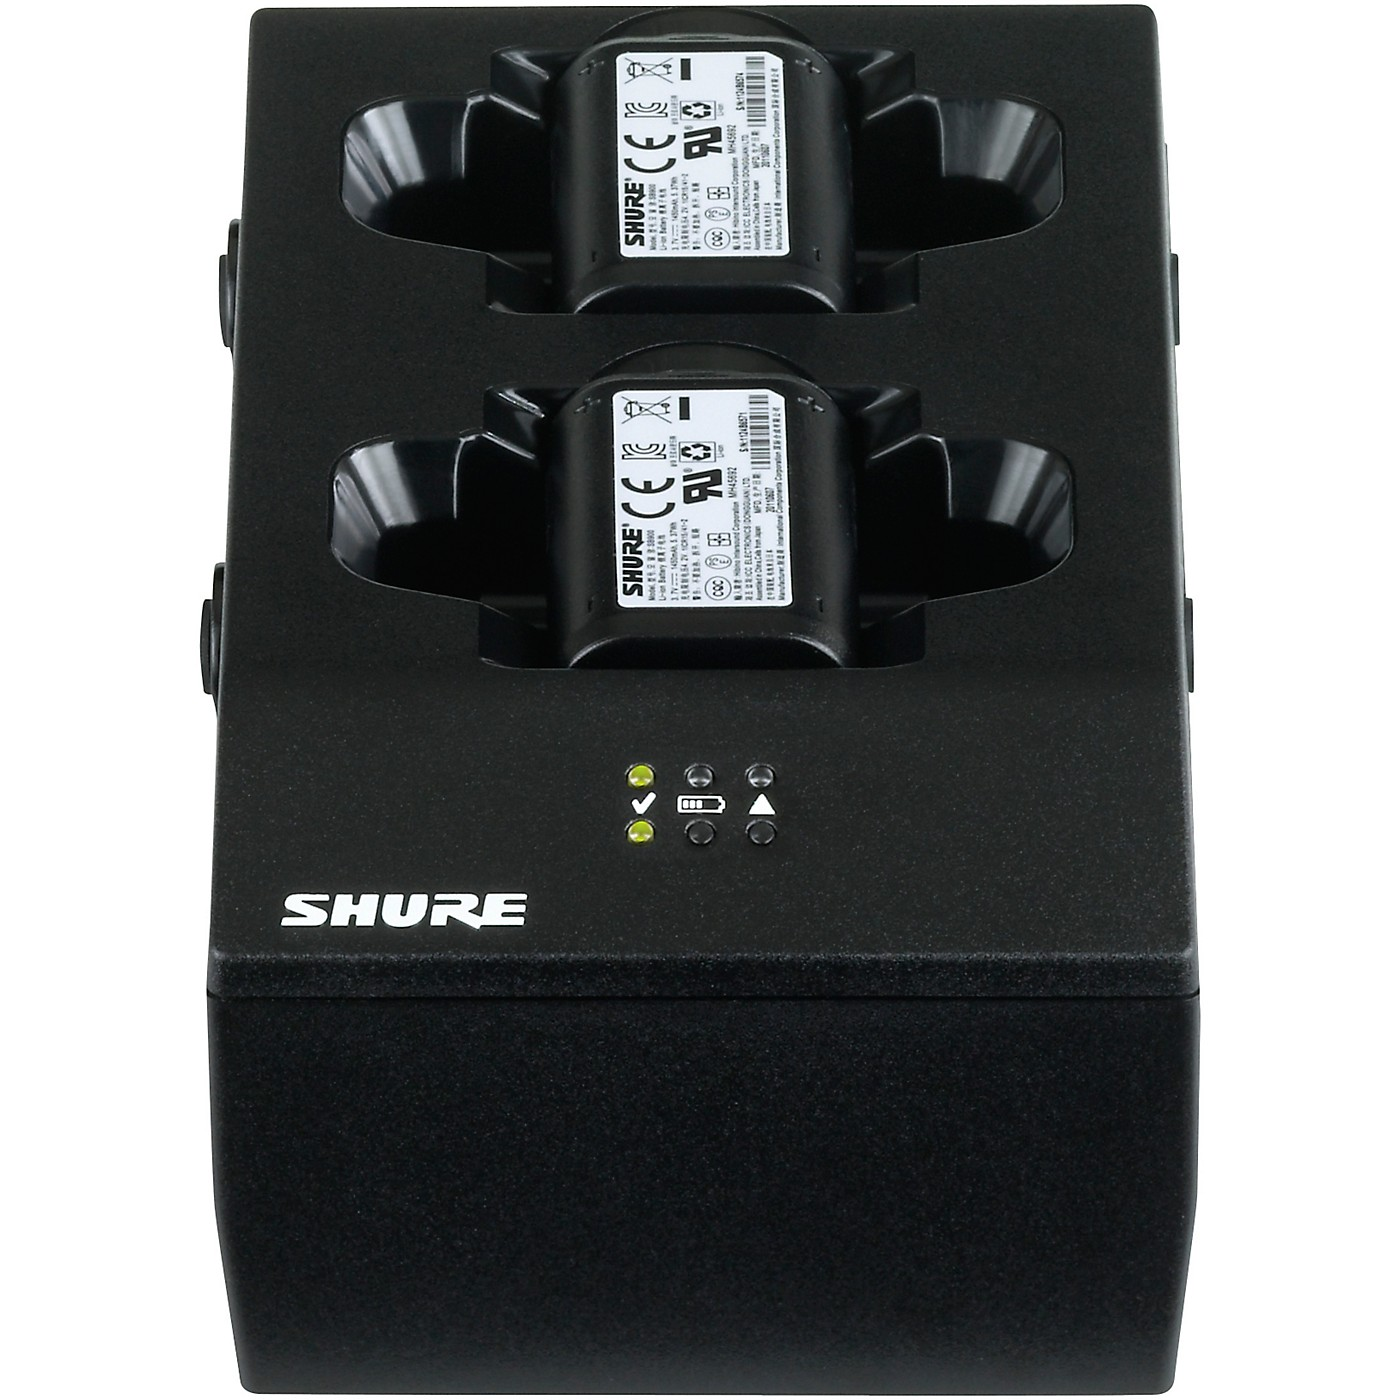 Shure SBC200 Dual-Docking Battery Charger - US Power Supply Included thumbnail